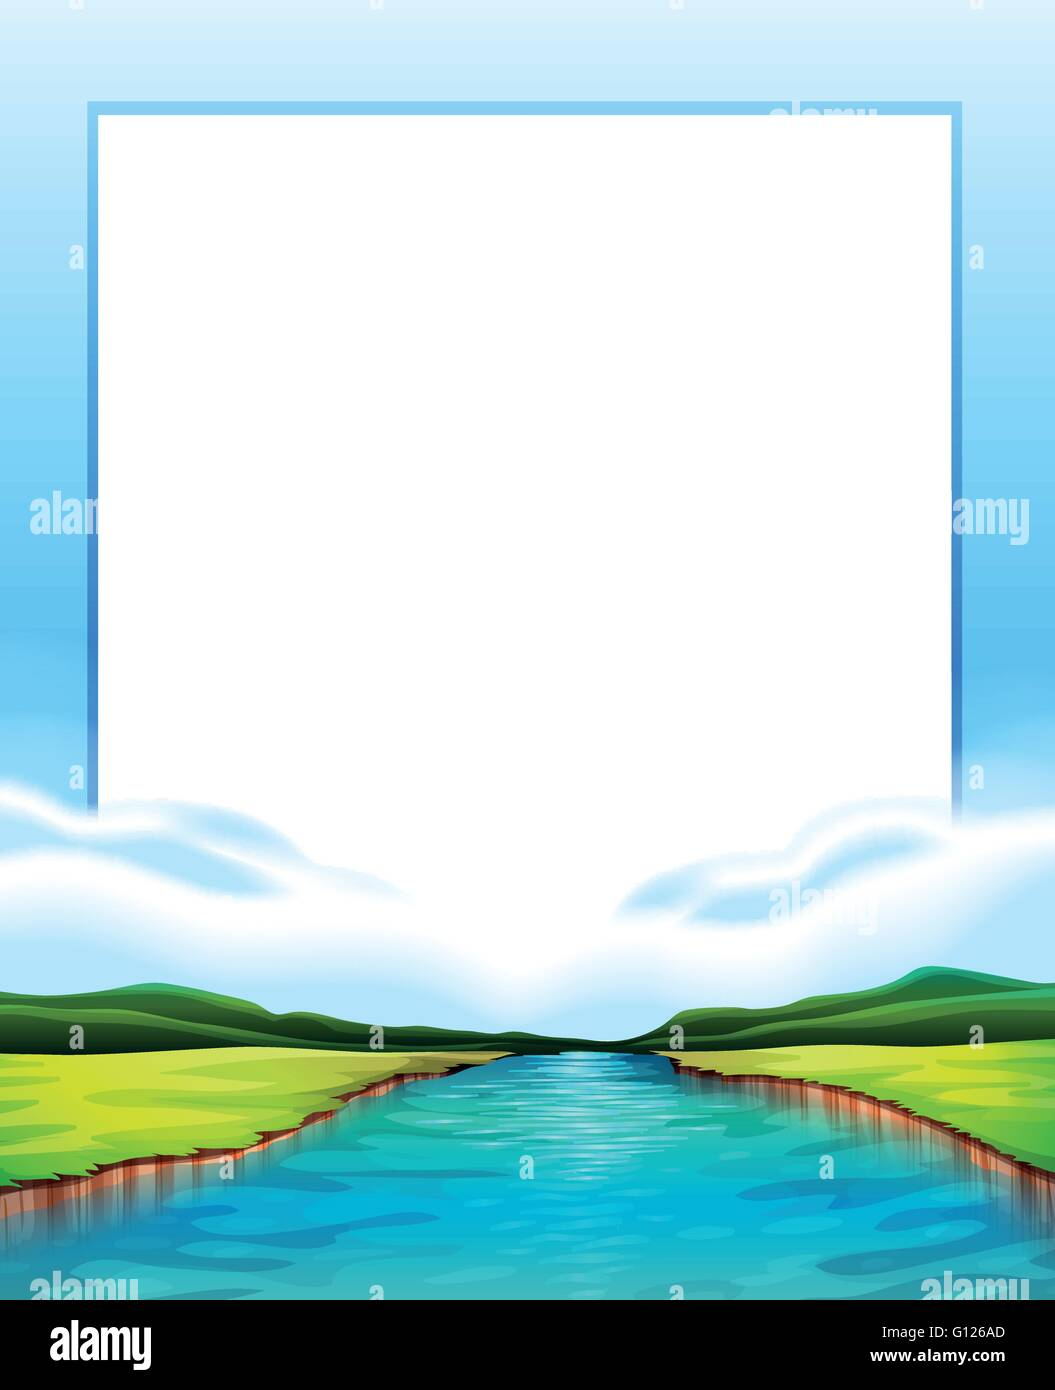 Border Design With River Scene Illustration Stock Photo